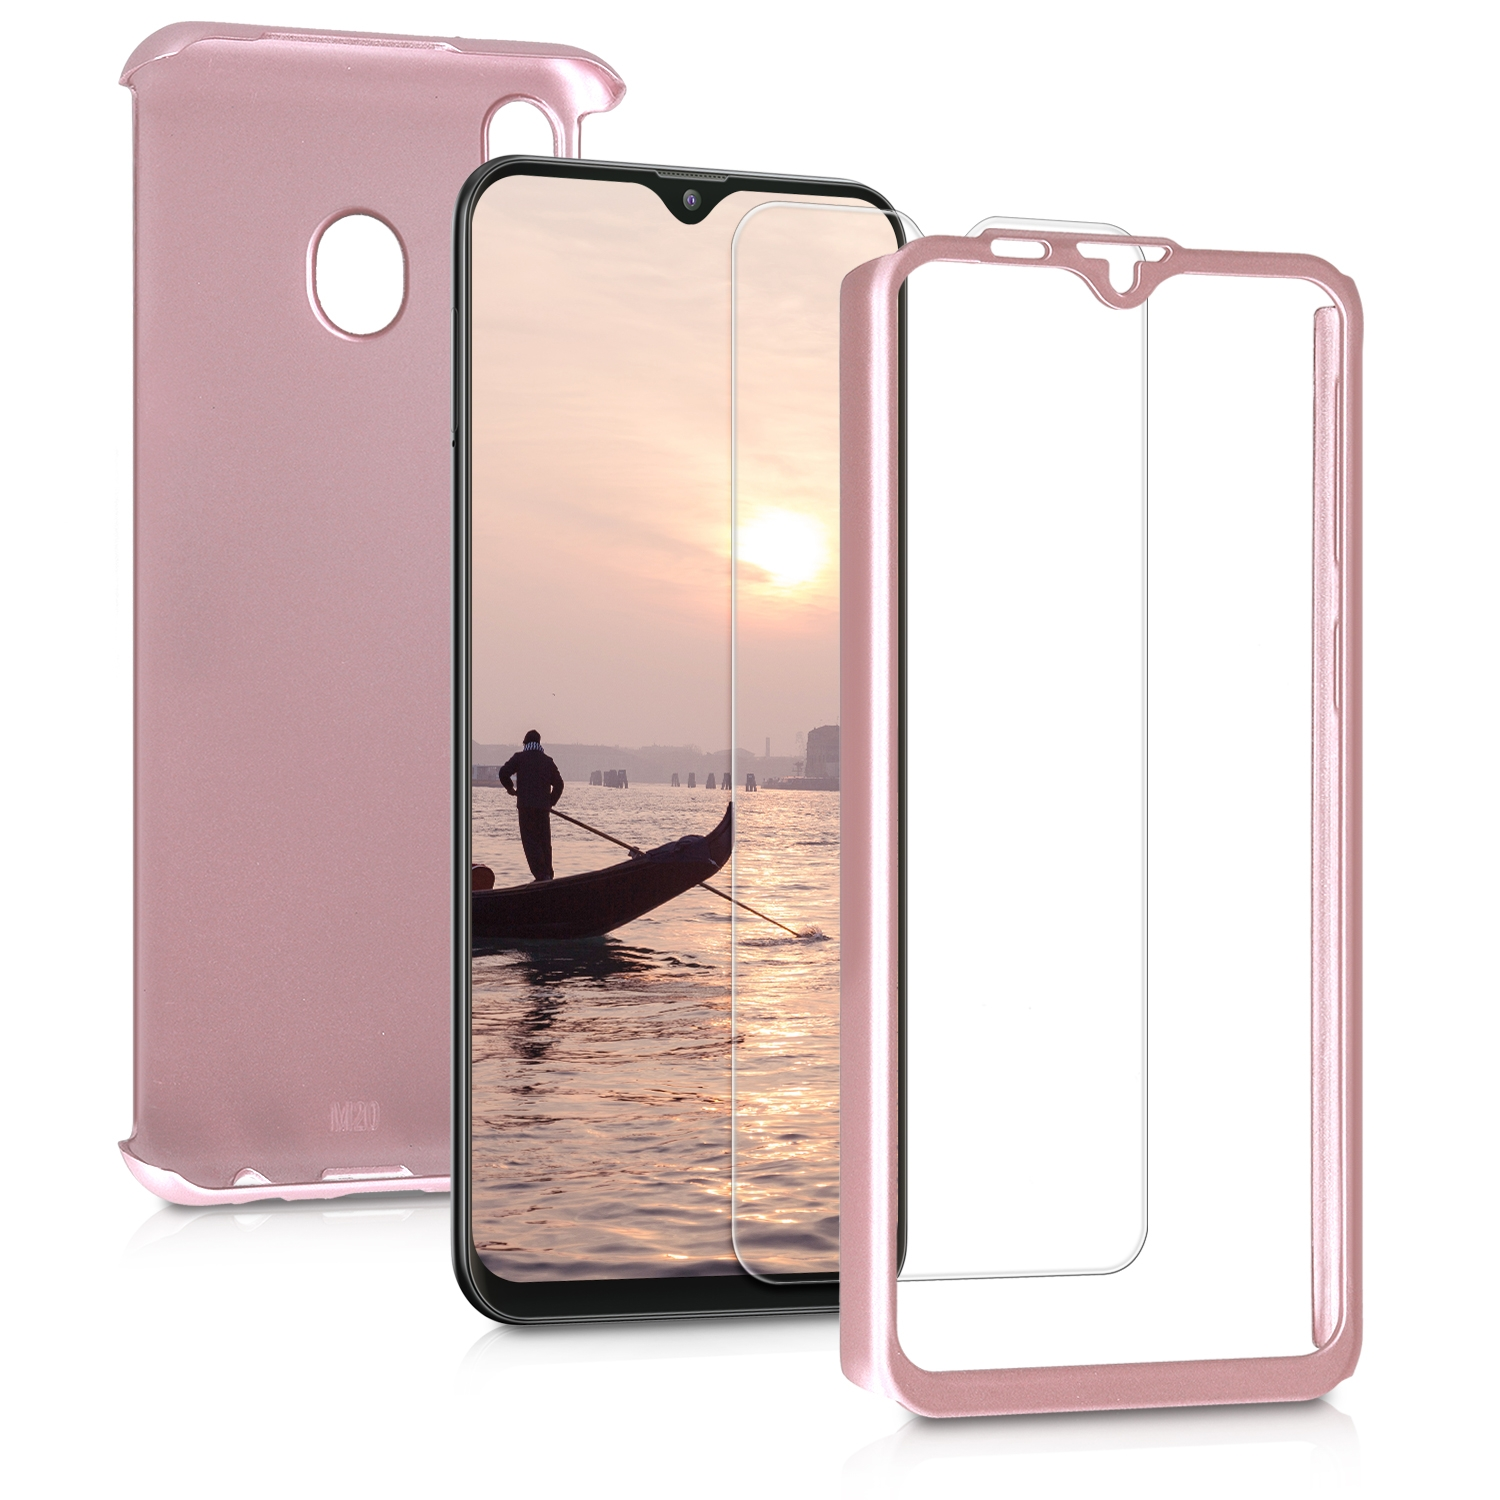 KW Θήκη Full Body Samsung Galaxy M20 (2019) & Tempered Glass - Metallic Rose Gold (48314.31)